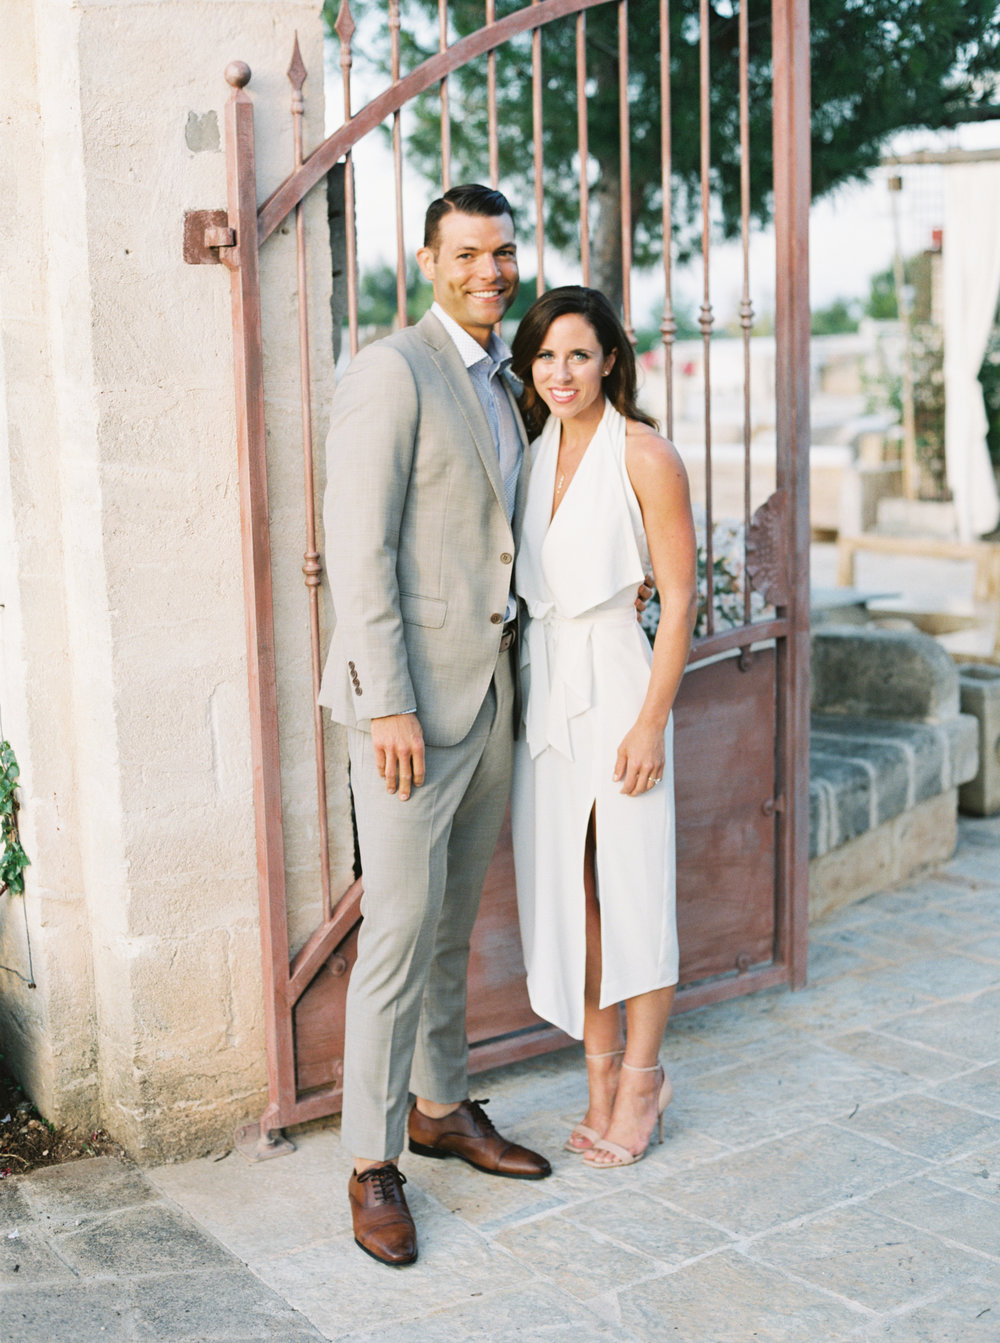 Destination wedding welcome party attire - Planned by Meggie Francisco Events at Masseria Montenapoleone in Puglia, Italy. Photography by Tracy Enoch, video by Innar Hunt.